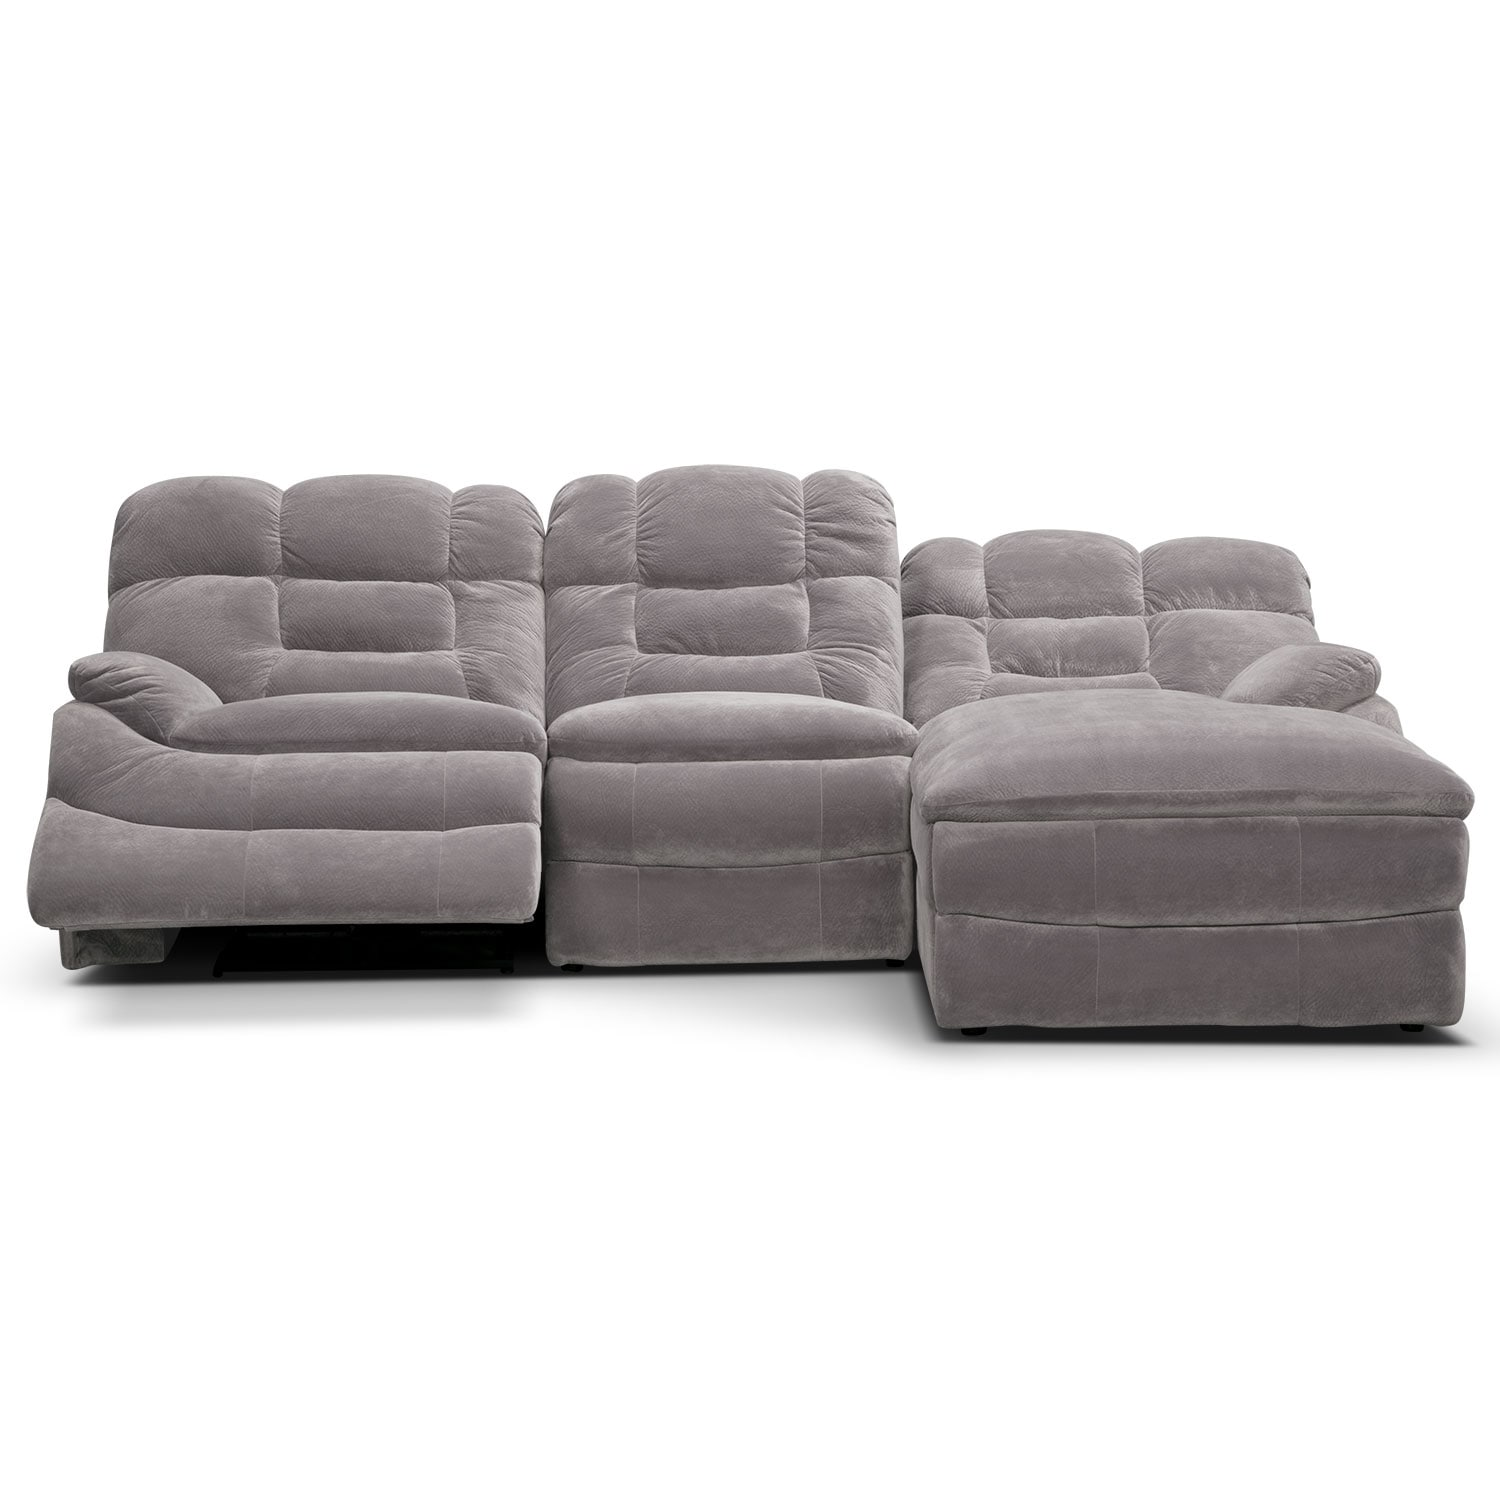 Big Softie 3 Piece Power Reclining Sectional With Right Facing Chaise Gray Value City